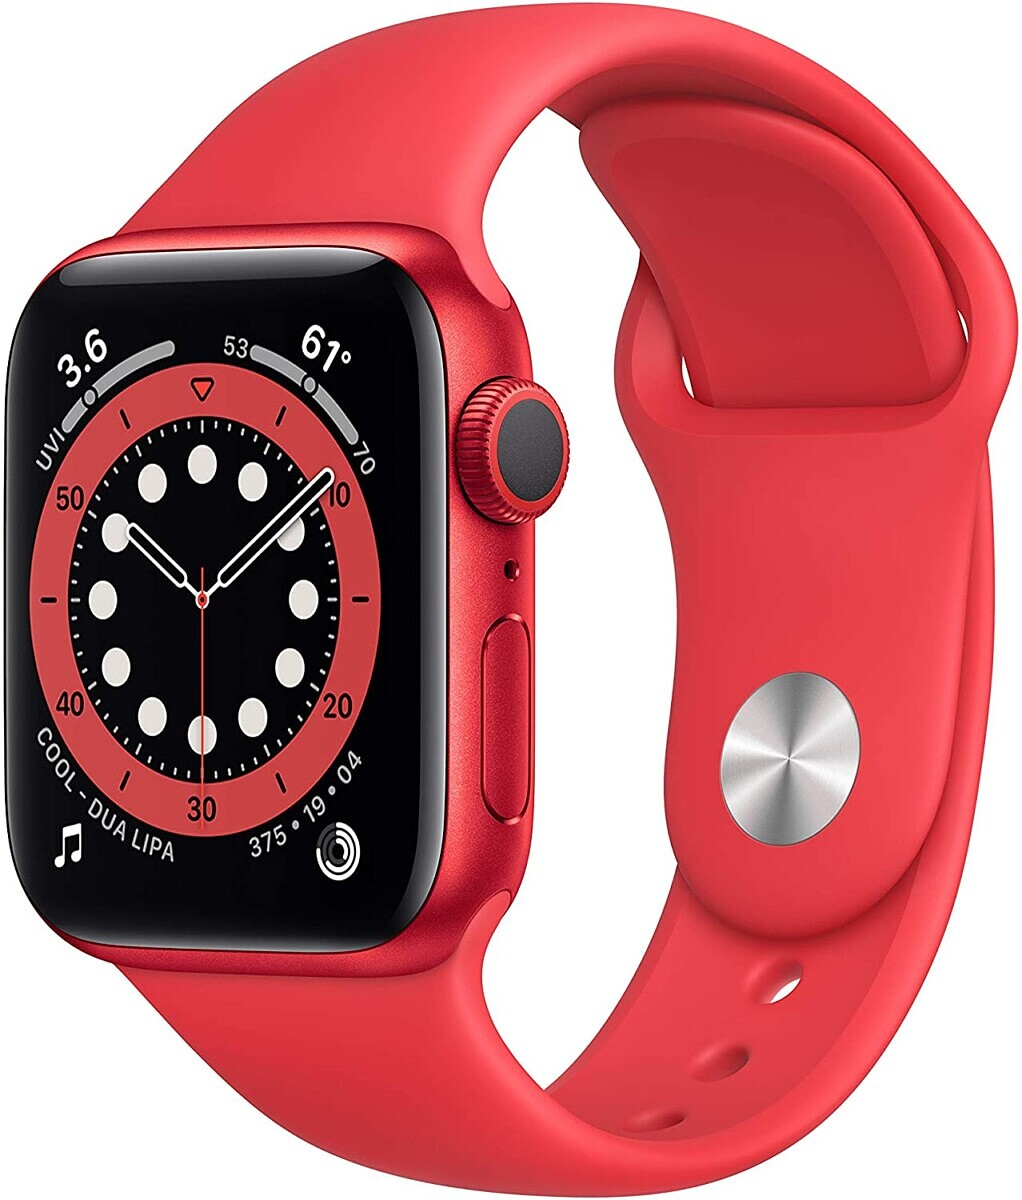 Apple Watch Series 6 at Amazon